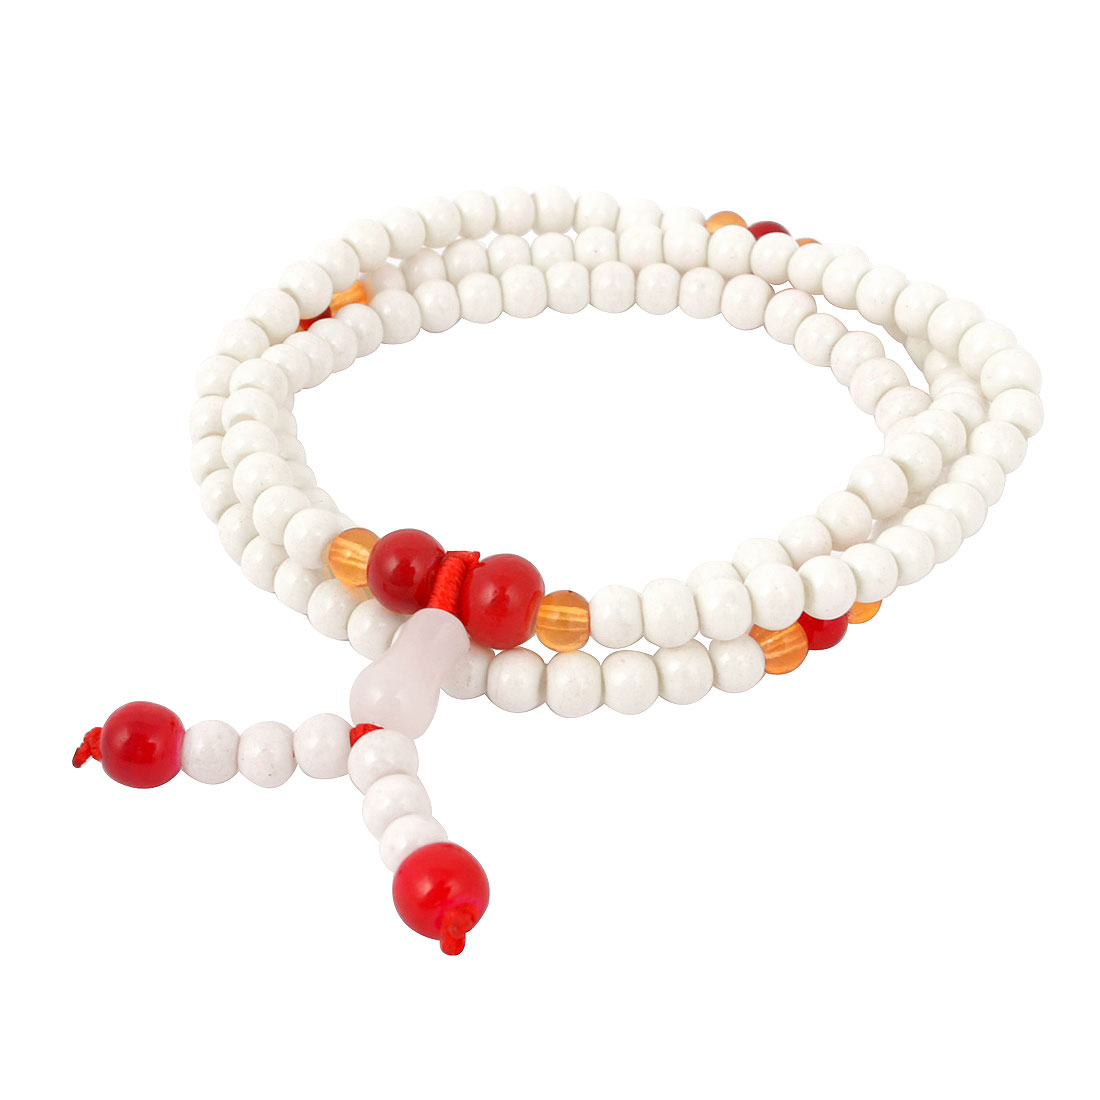 White Plastic Round Beads Ornament Elastic Band Adjustable Wrist Bracelet for Women